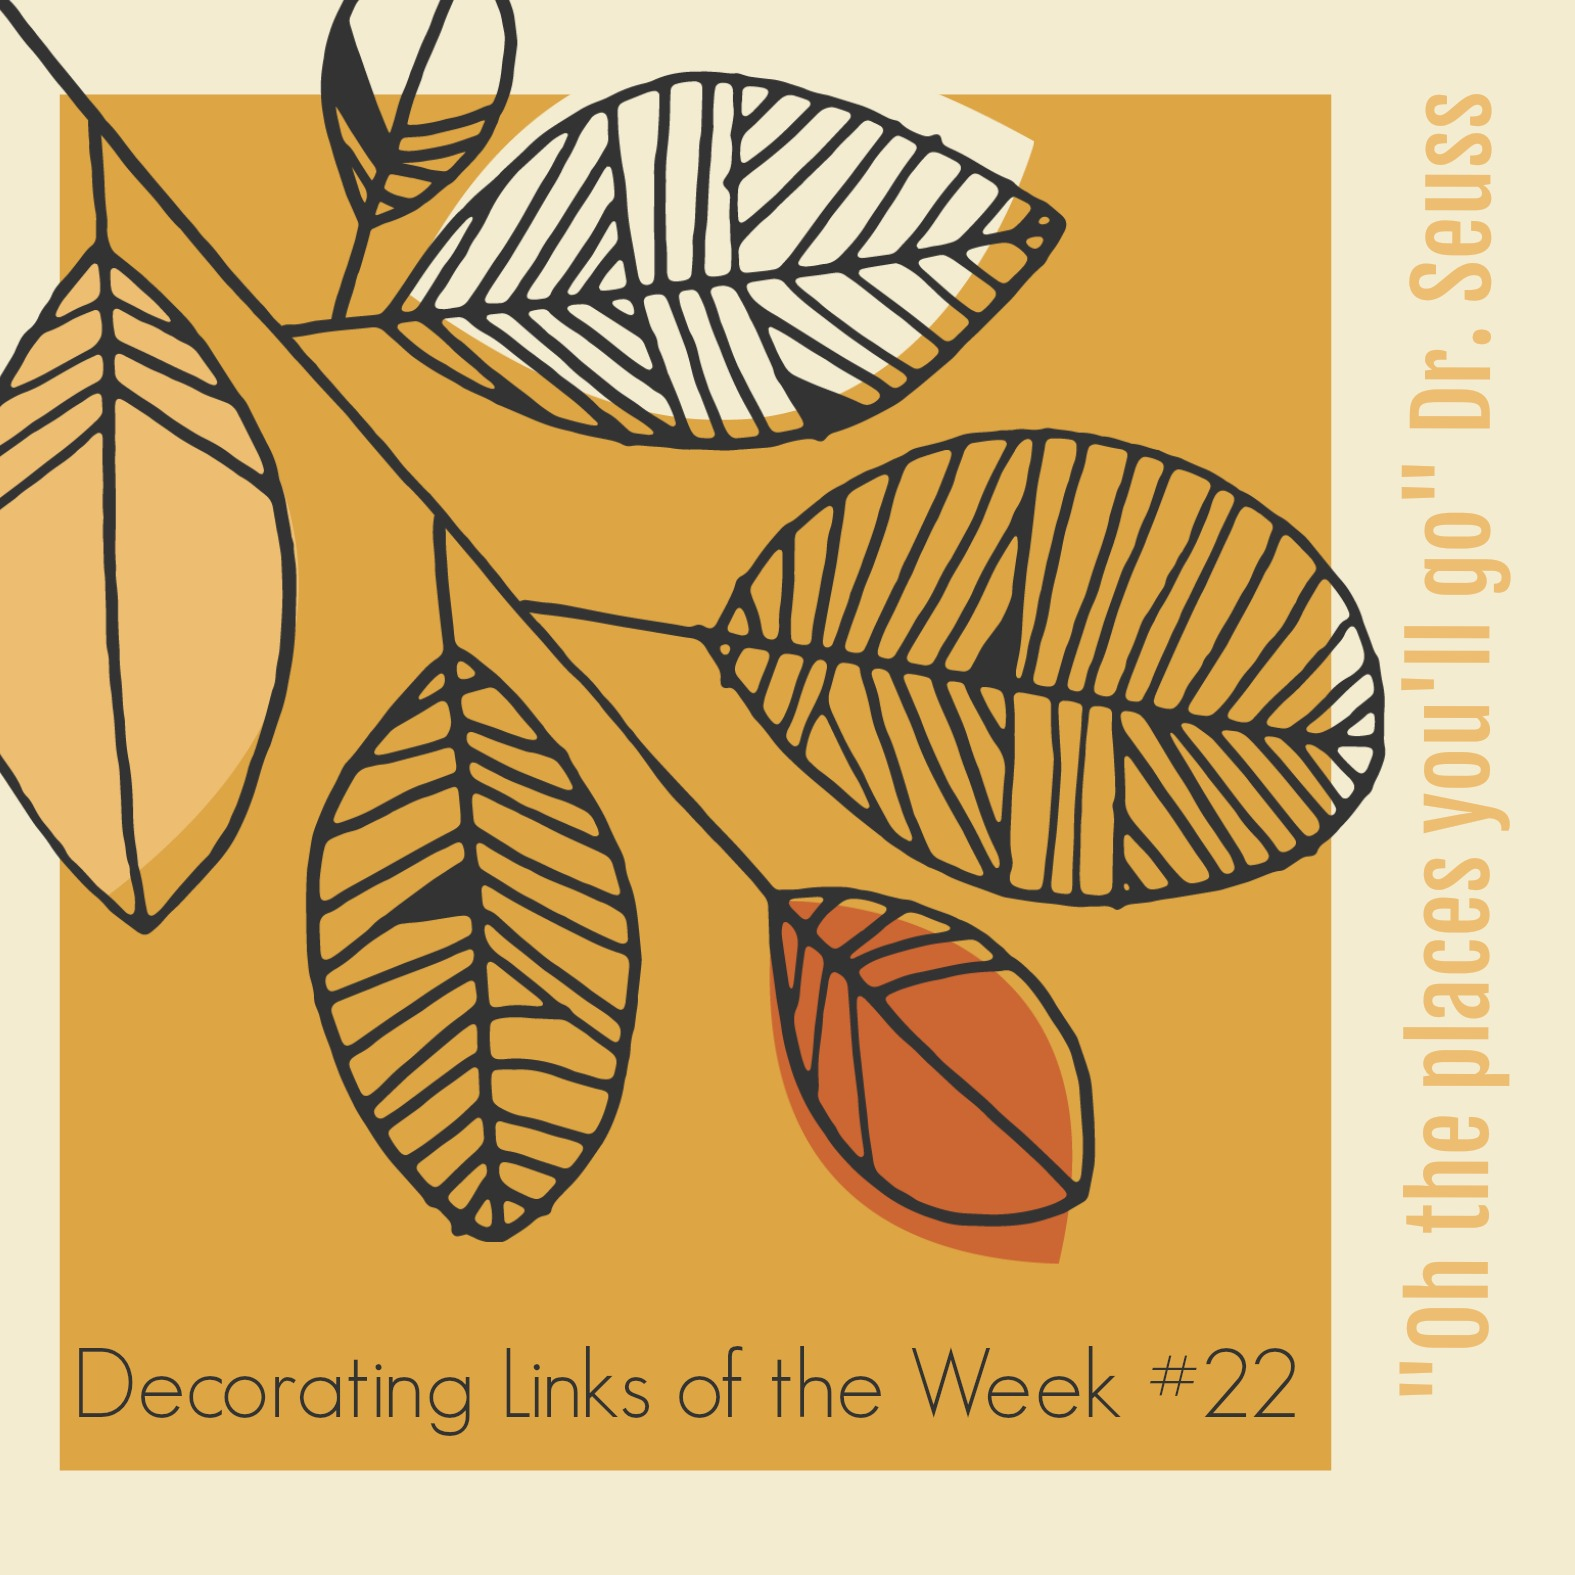 Decorating Links 22